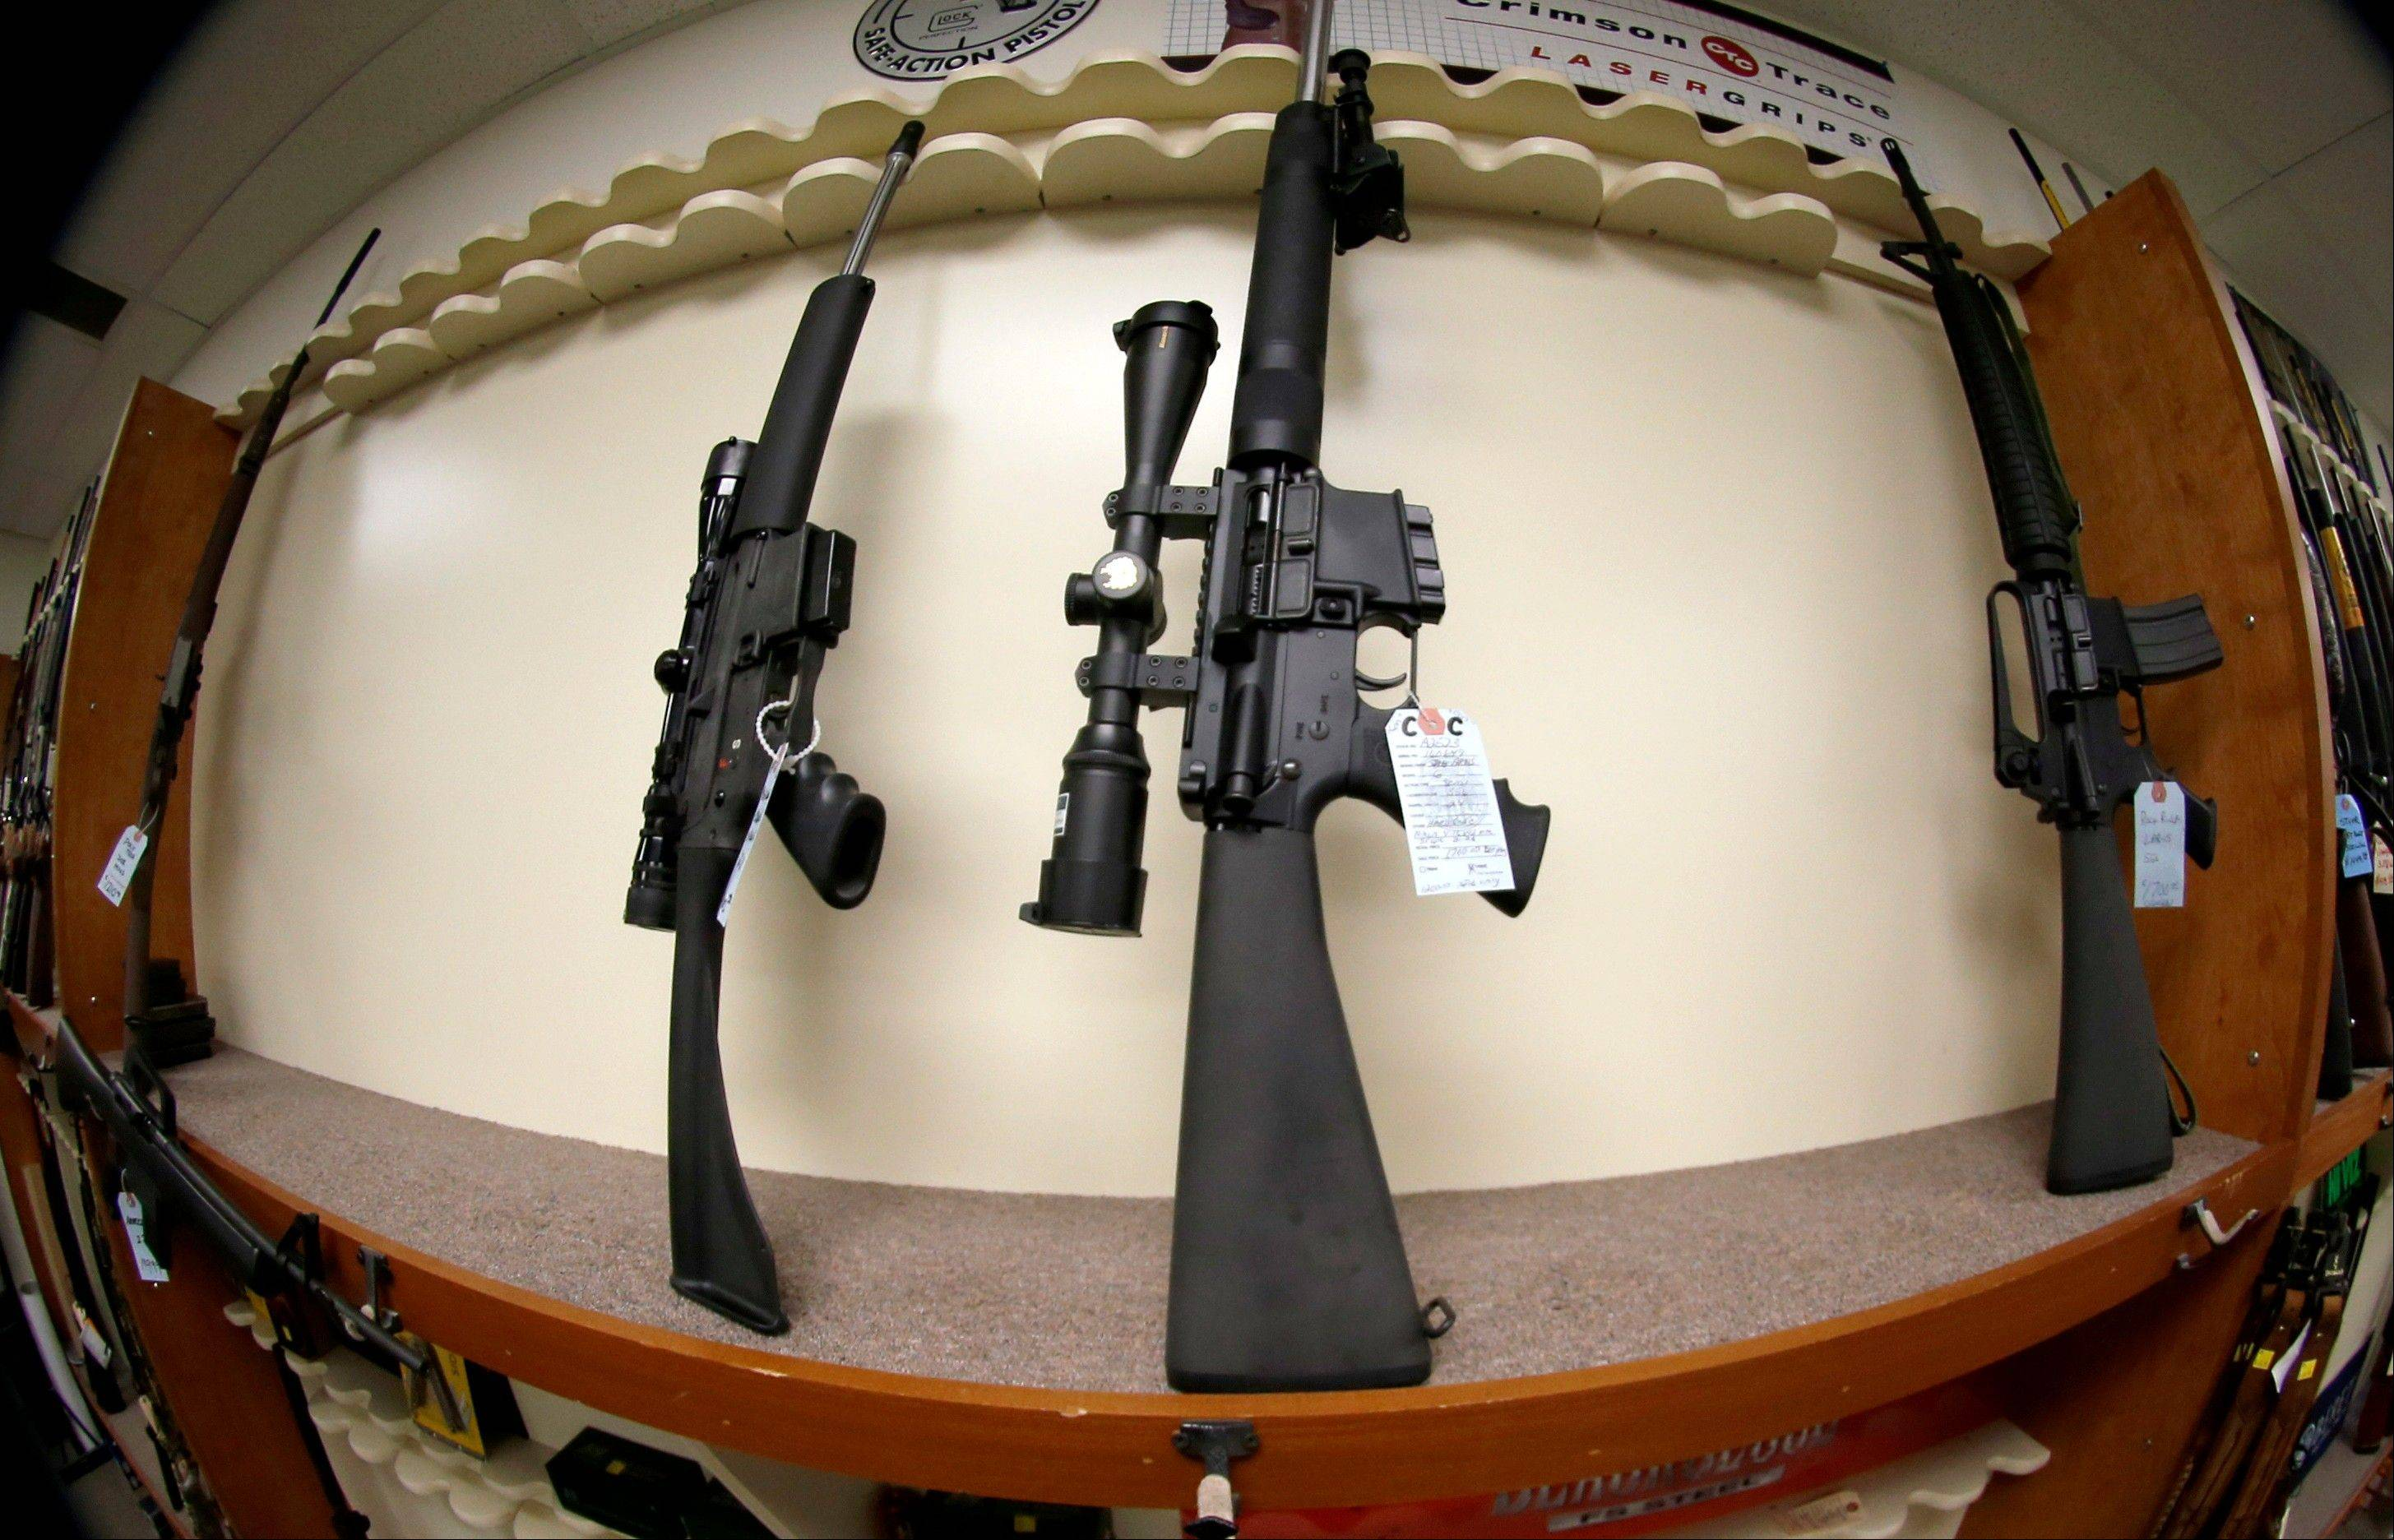 Wheeling trustees want the chance to vote on a municipal ordinance banning assault weapons, like these on display earlier this year in a gun shop in Pennsylvania.